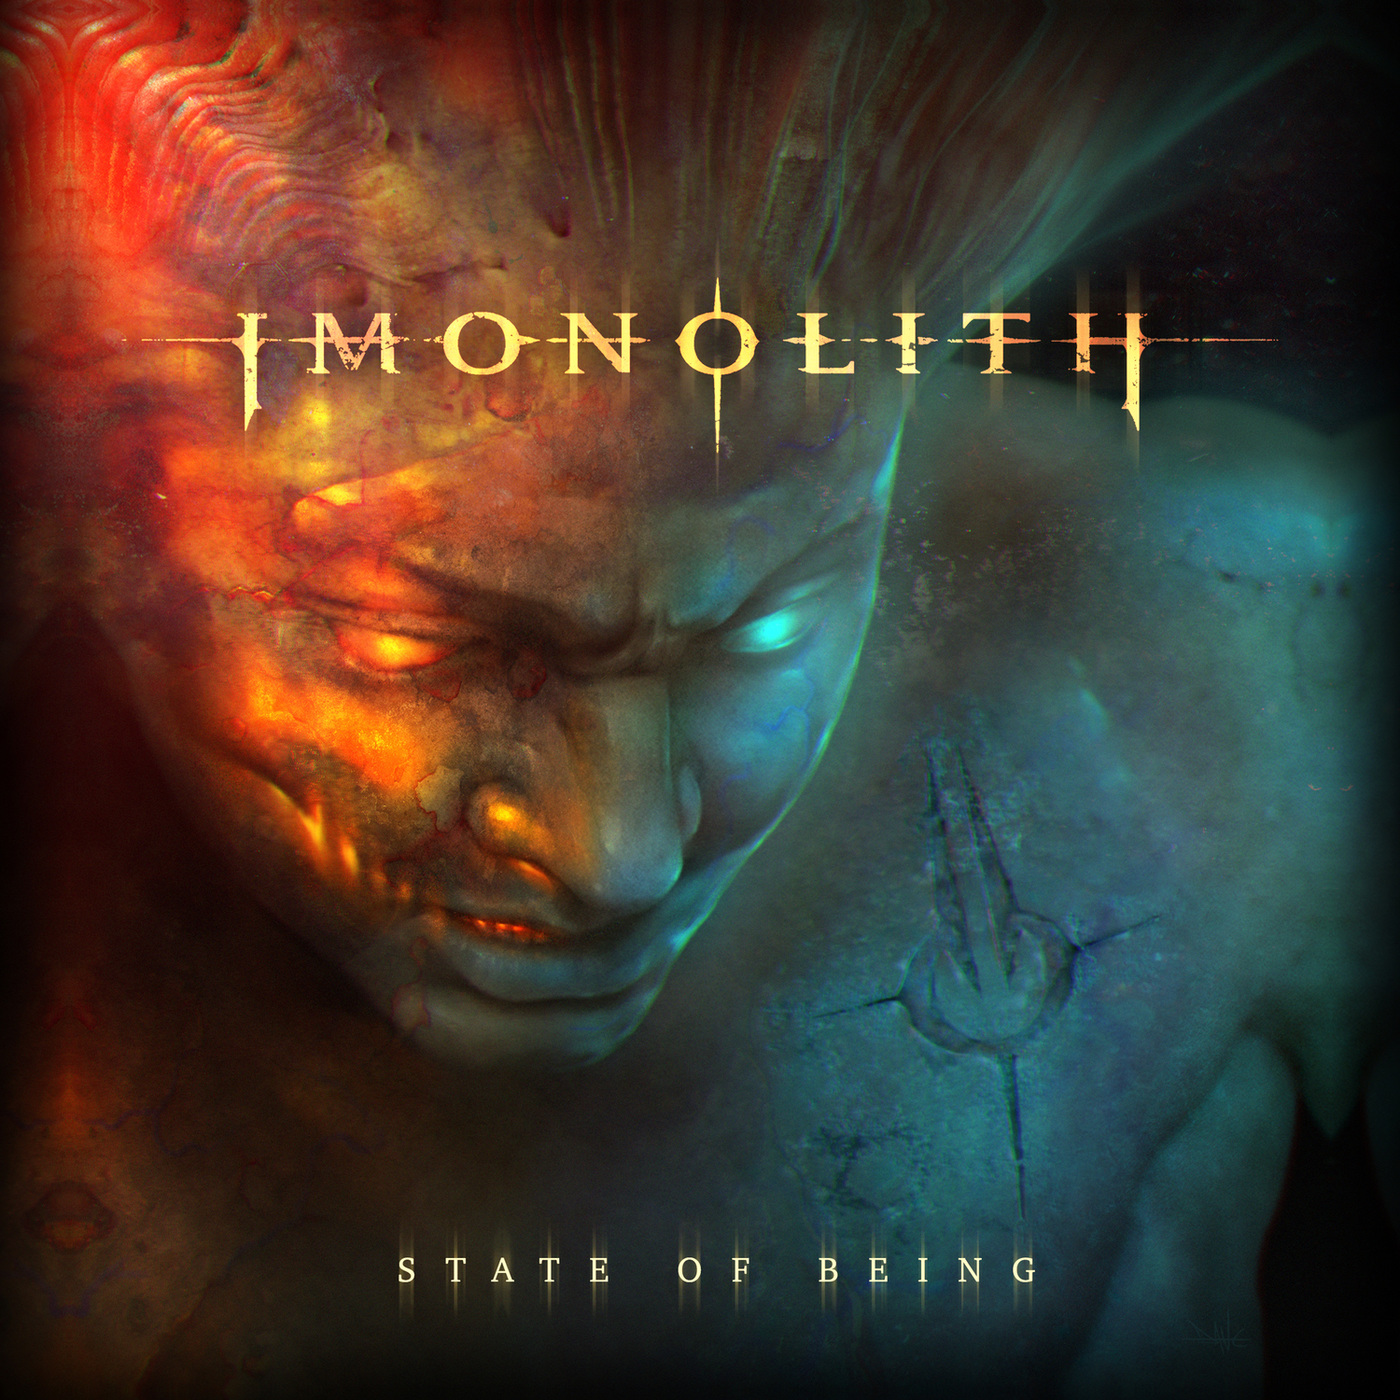 Imonolith - State of Being